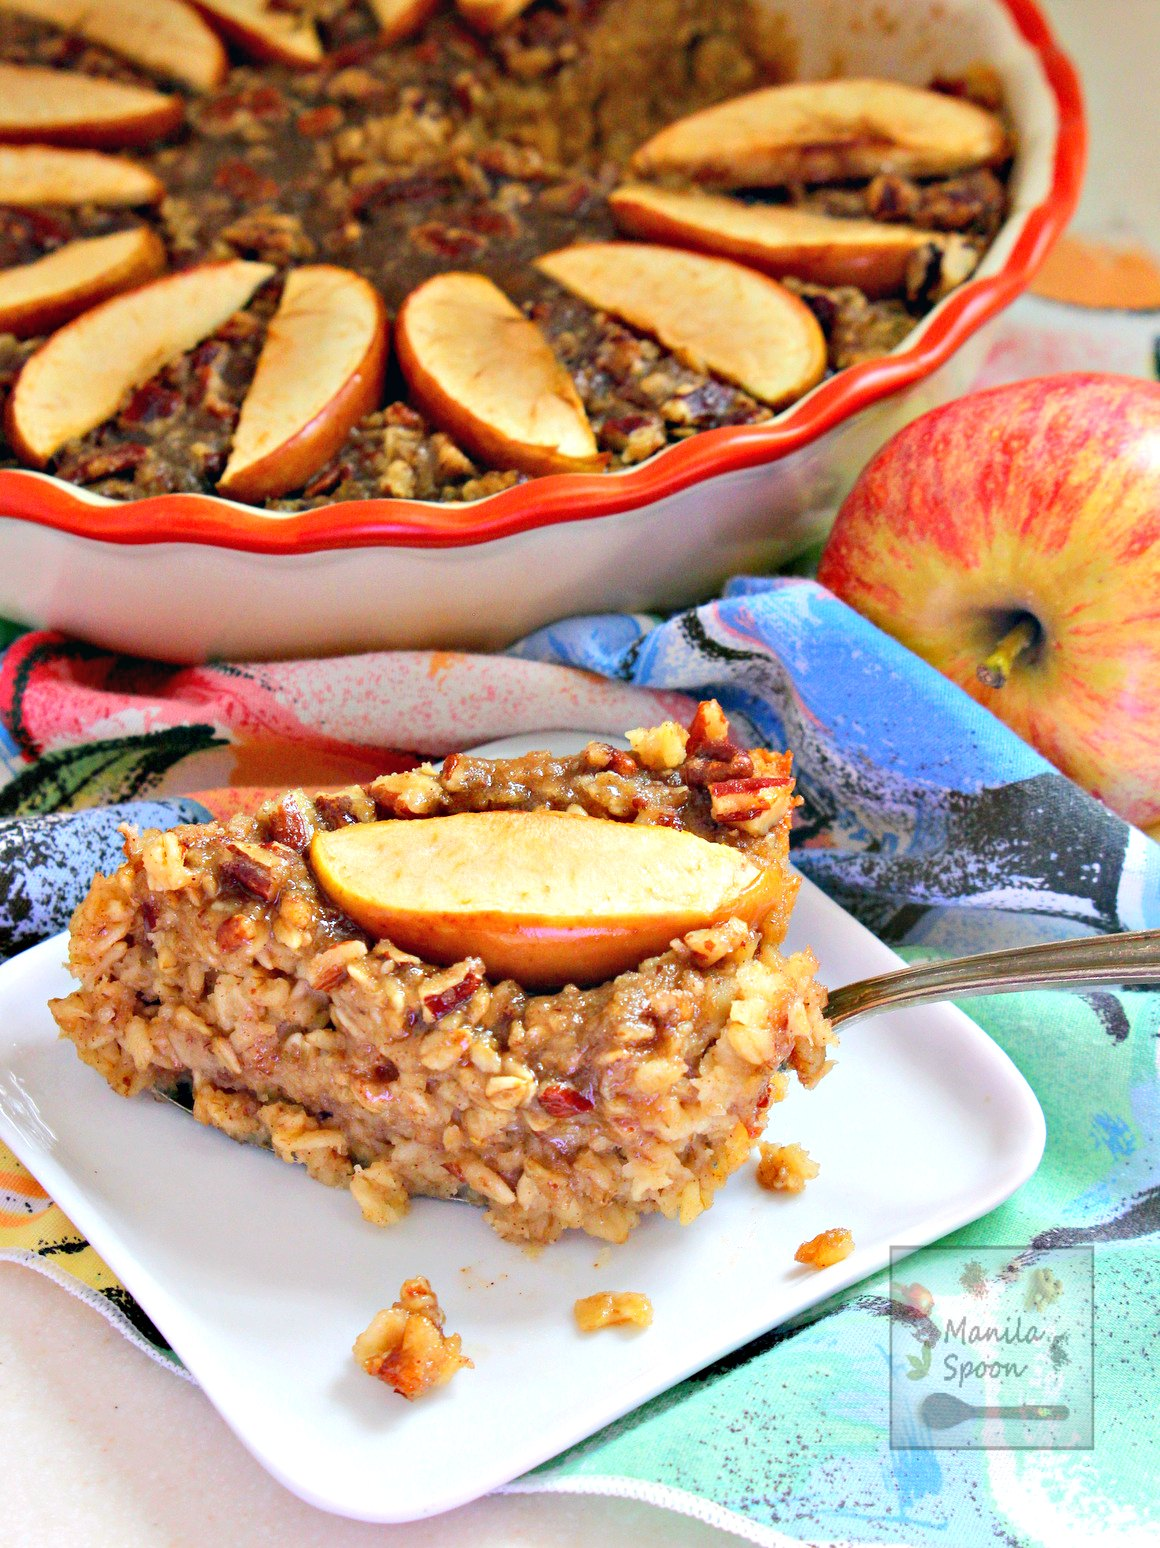 Loaded with apples and a buttery, crunchy praline topping this overnight baked cinnamon-flavored oatmeal is a delicious winter breakfast or brunch dish! CAN BE MADE AHEAD and simply bake the next day!